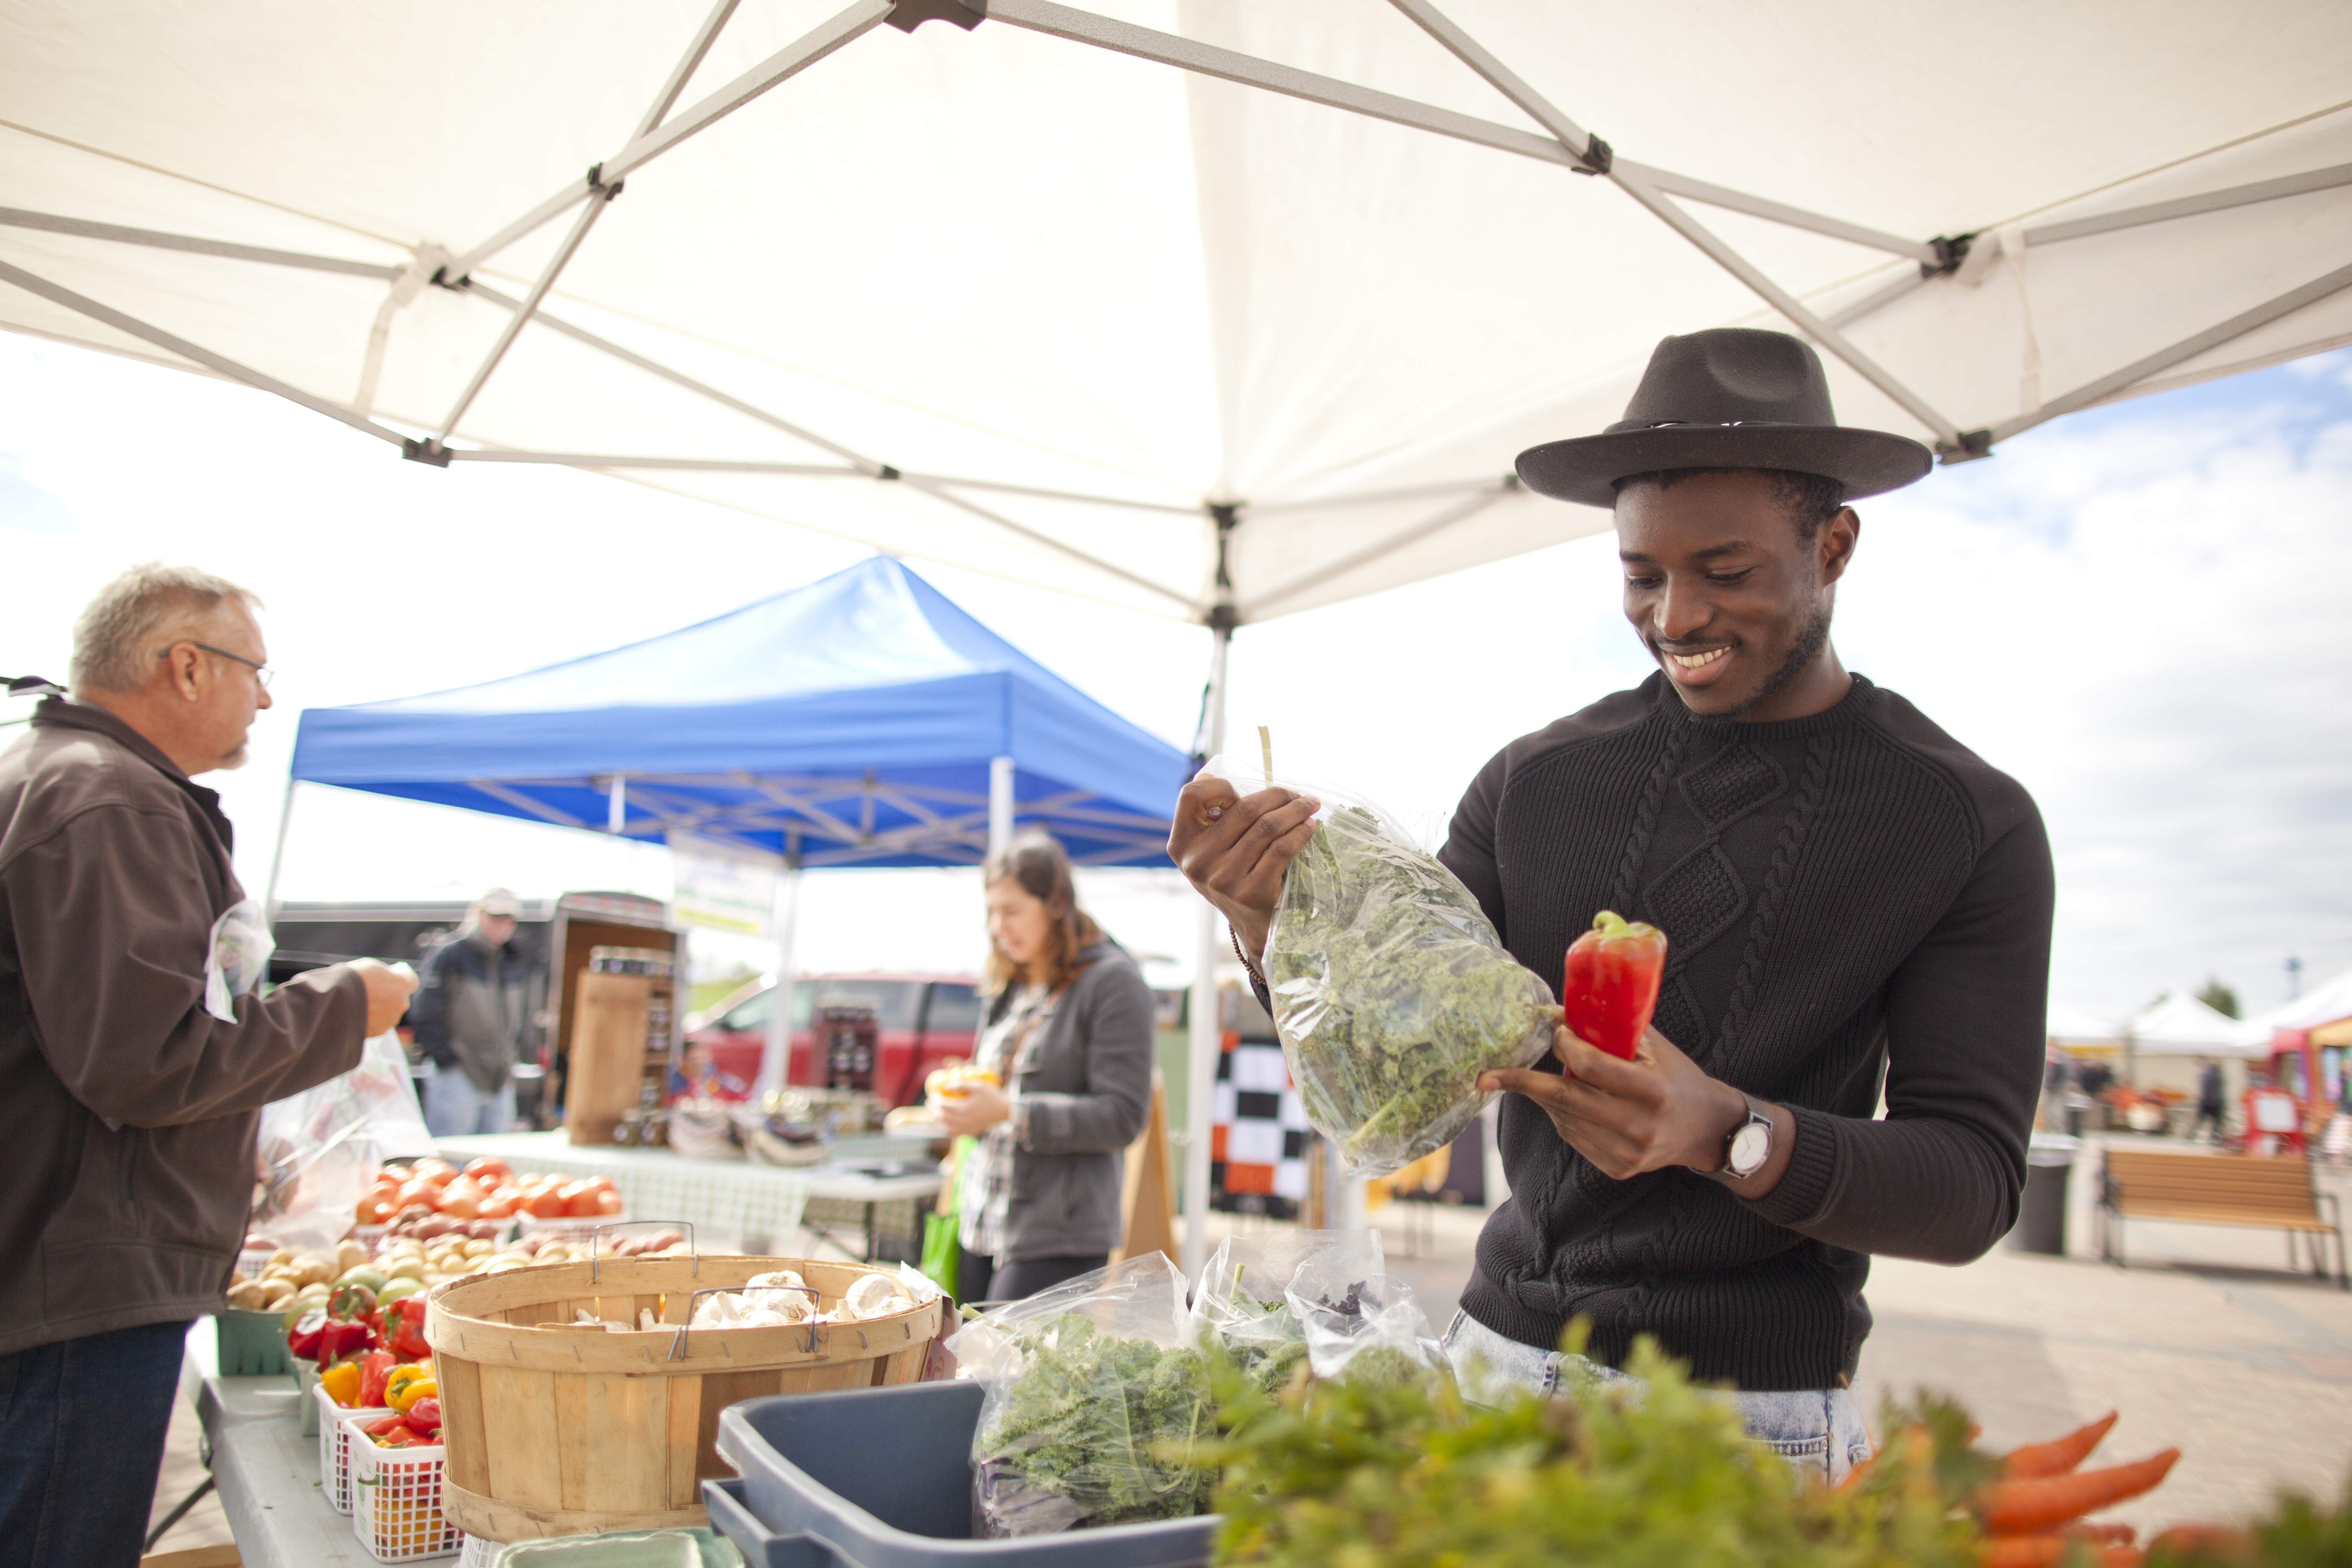 A man in a hat looks at produce at the local Farmers Market